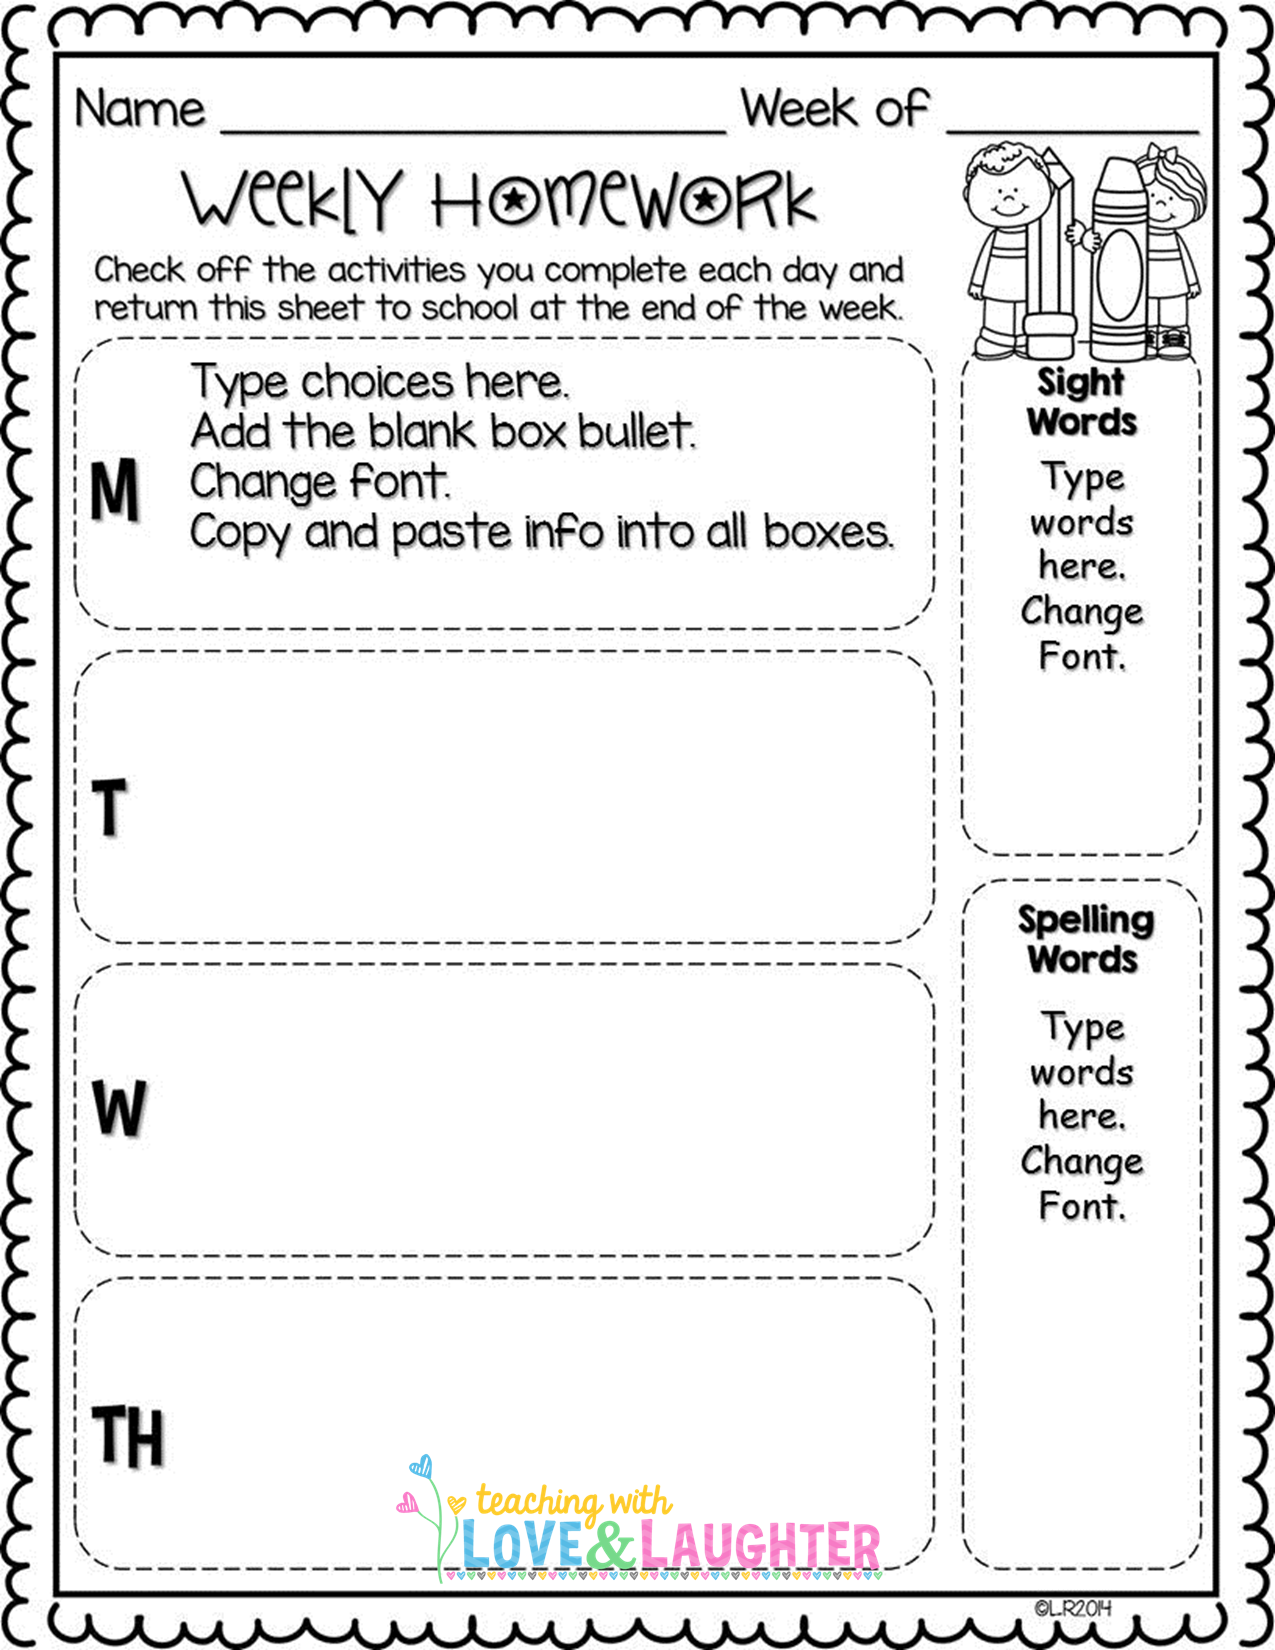 Editable Weekly Homework Checklists Compatible With First Grade Journeys